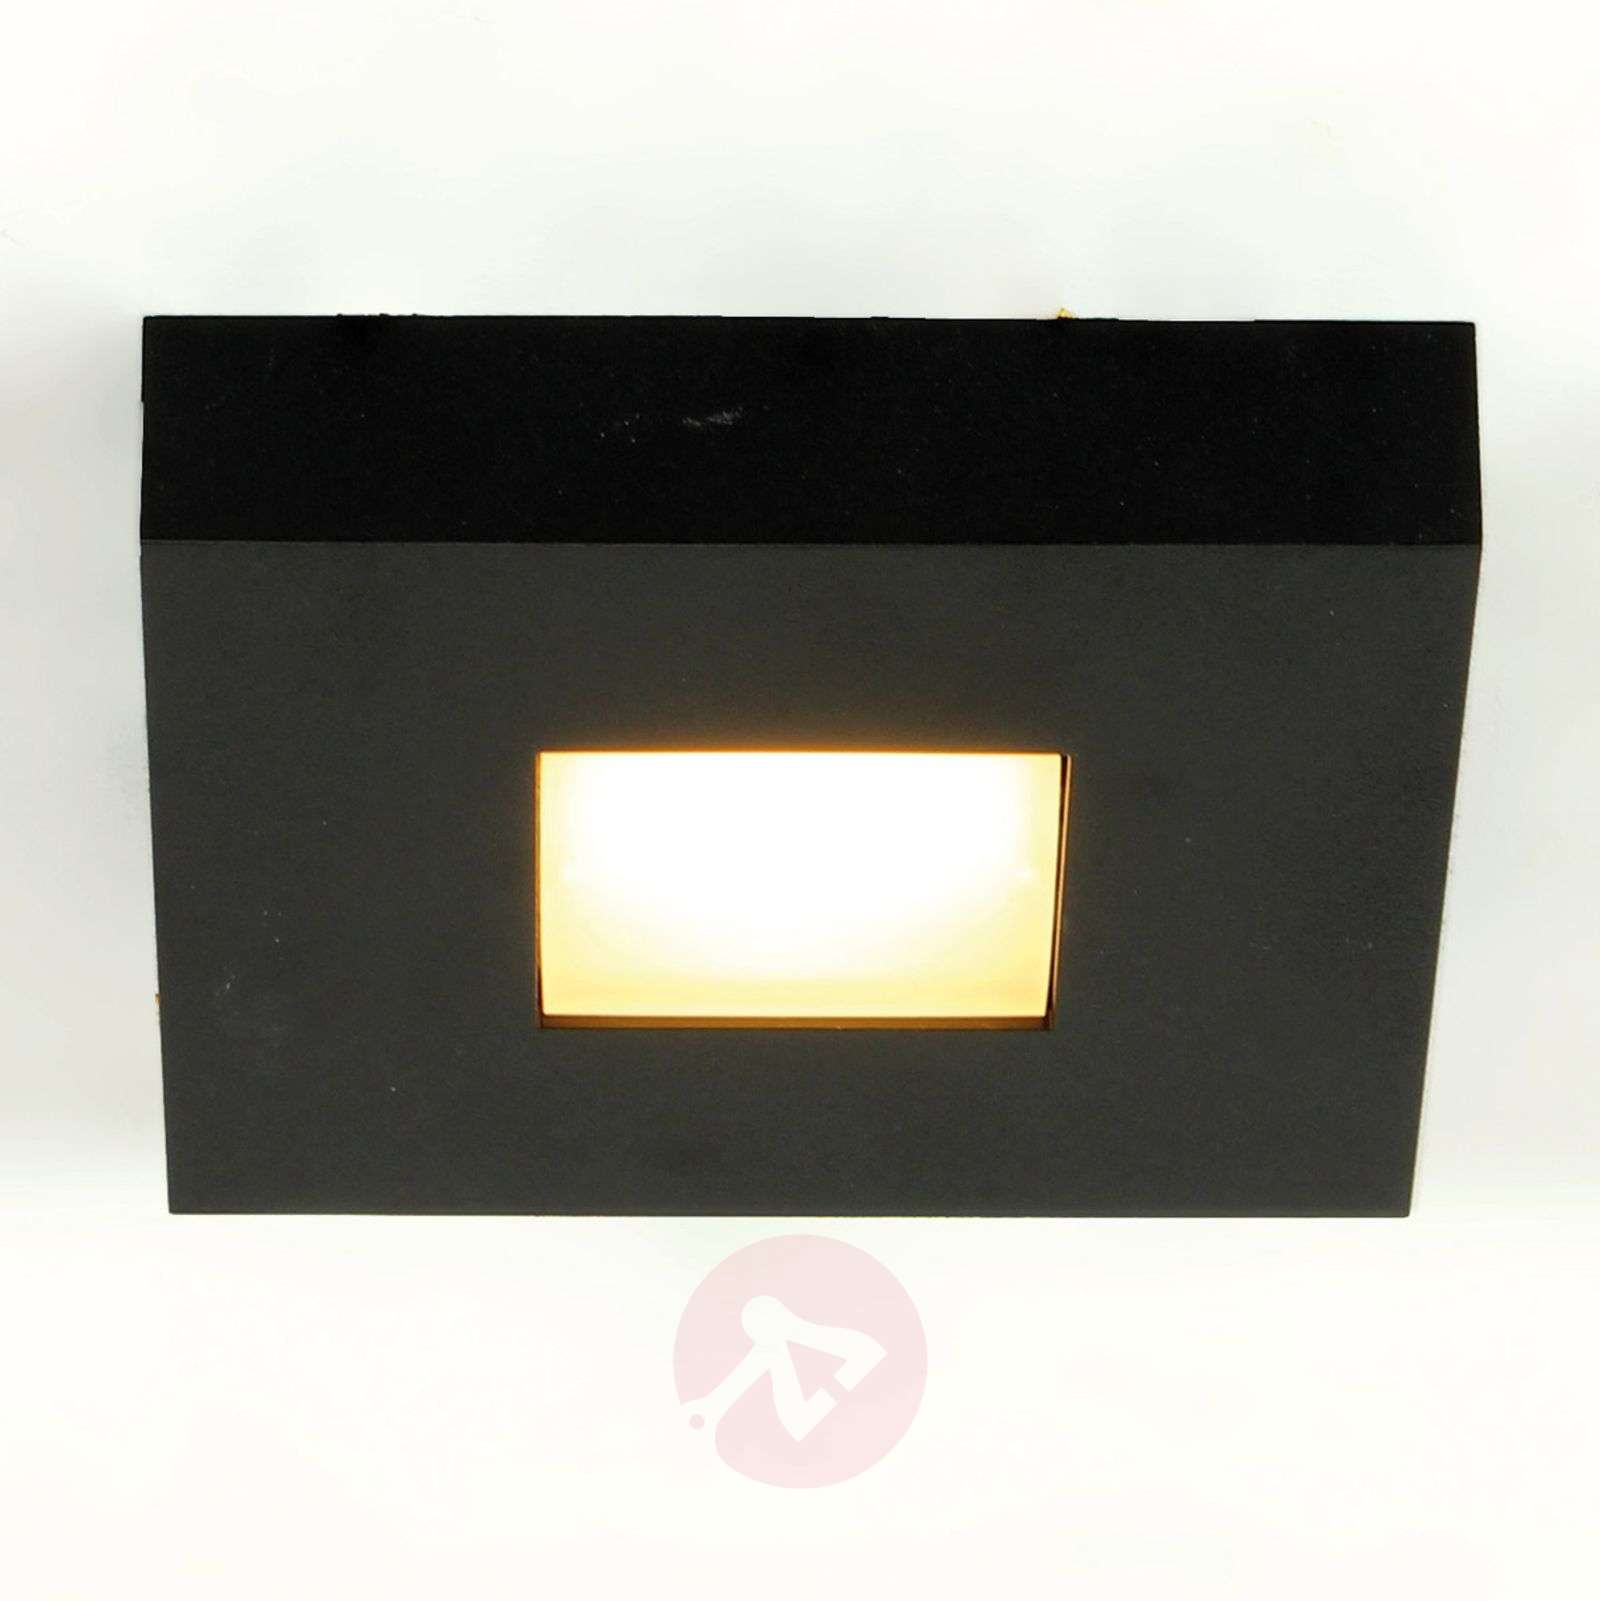 LED-plafondlamp Cubus in zwart-1556135-01